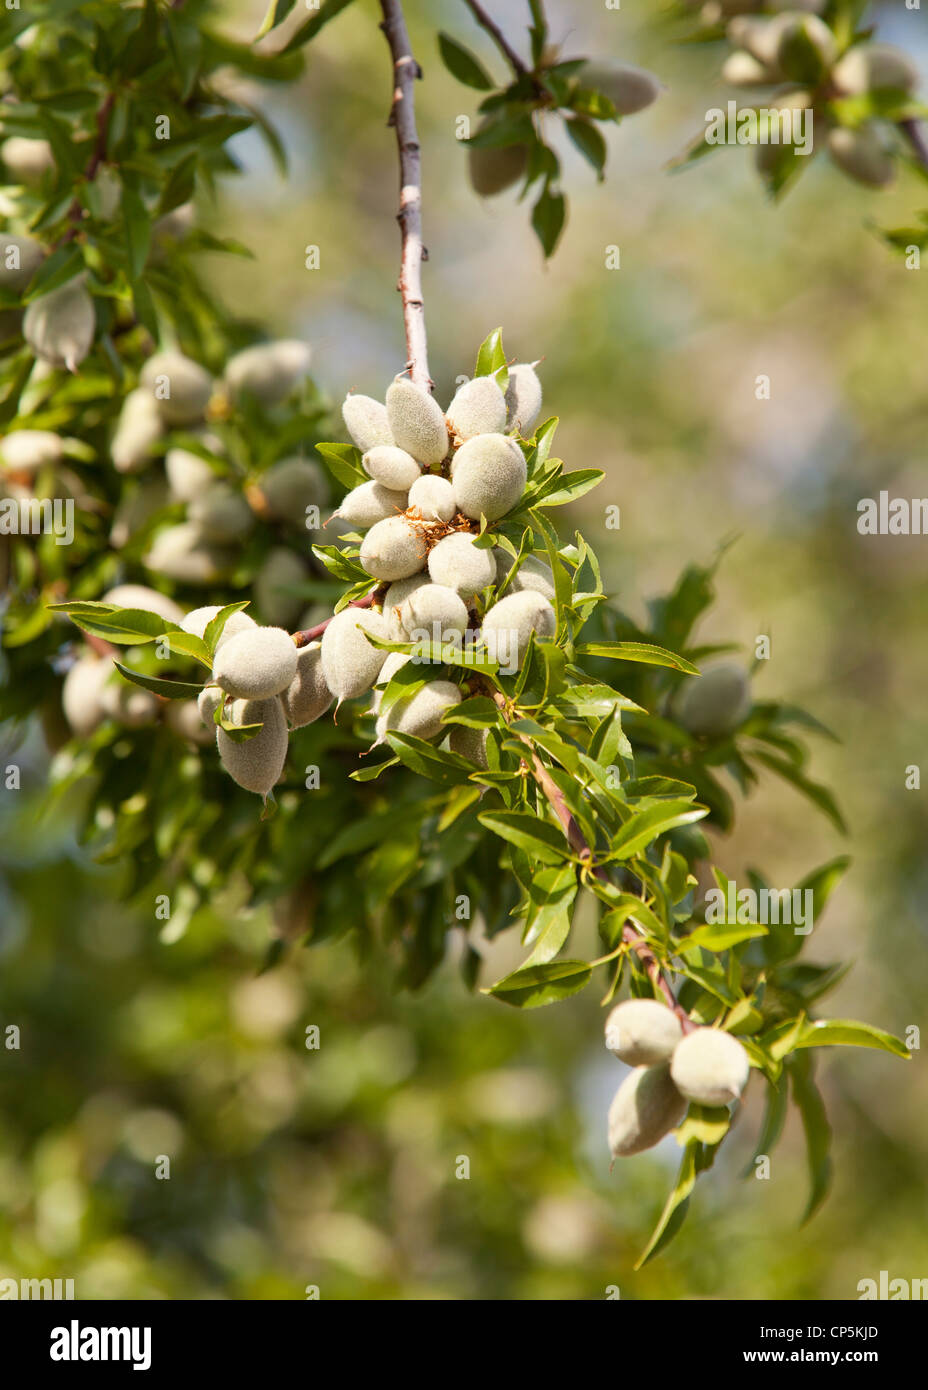 Almond fruits on branch - Stock Image